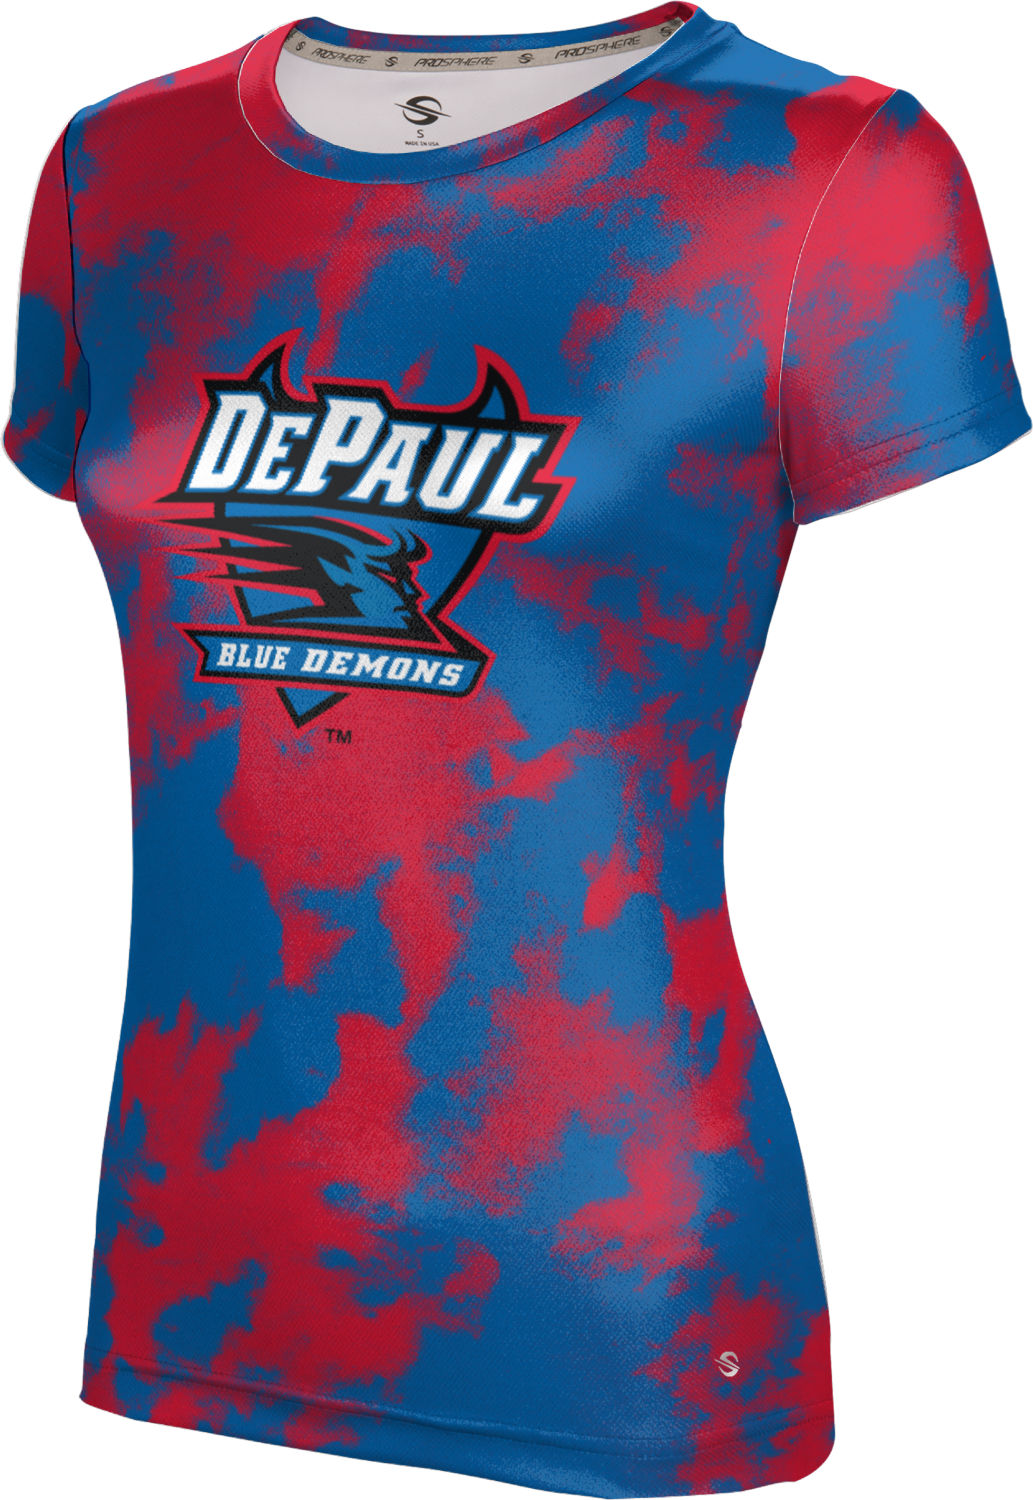 ProSphere Girls' DePaul University Grunge Tech Tee